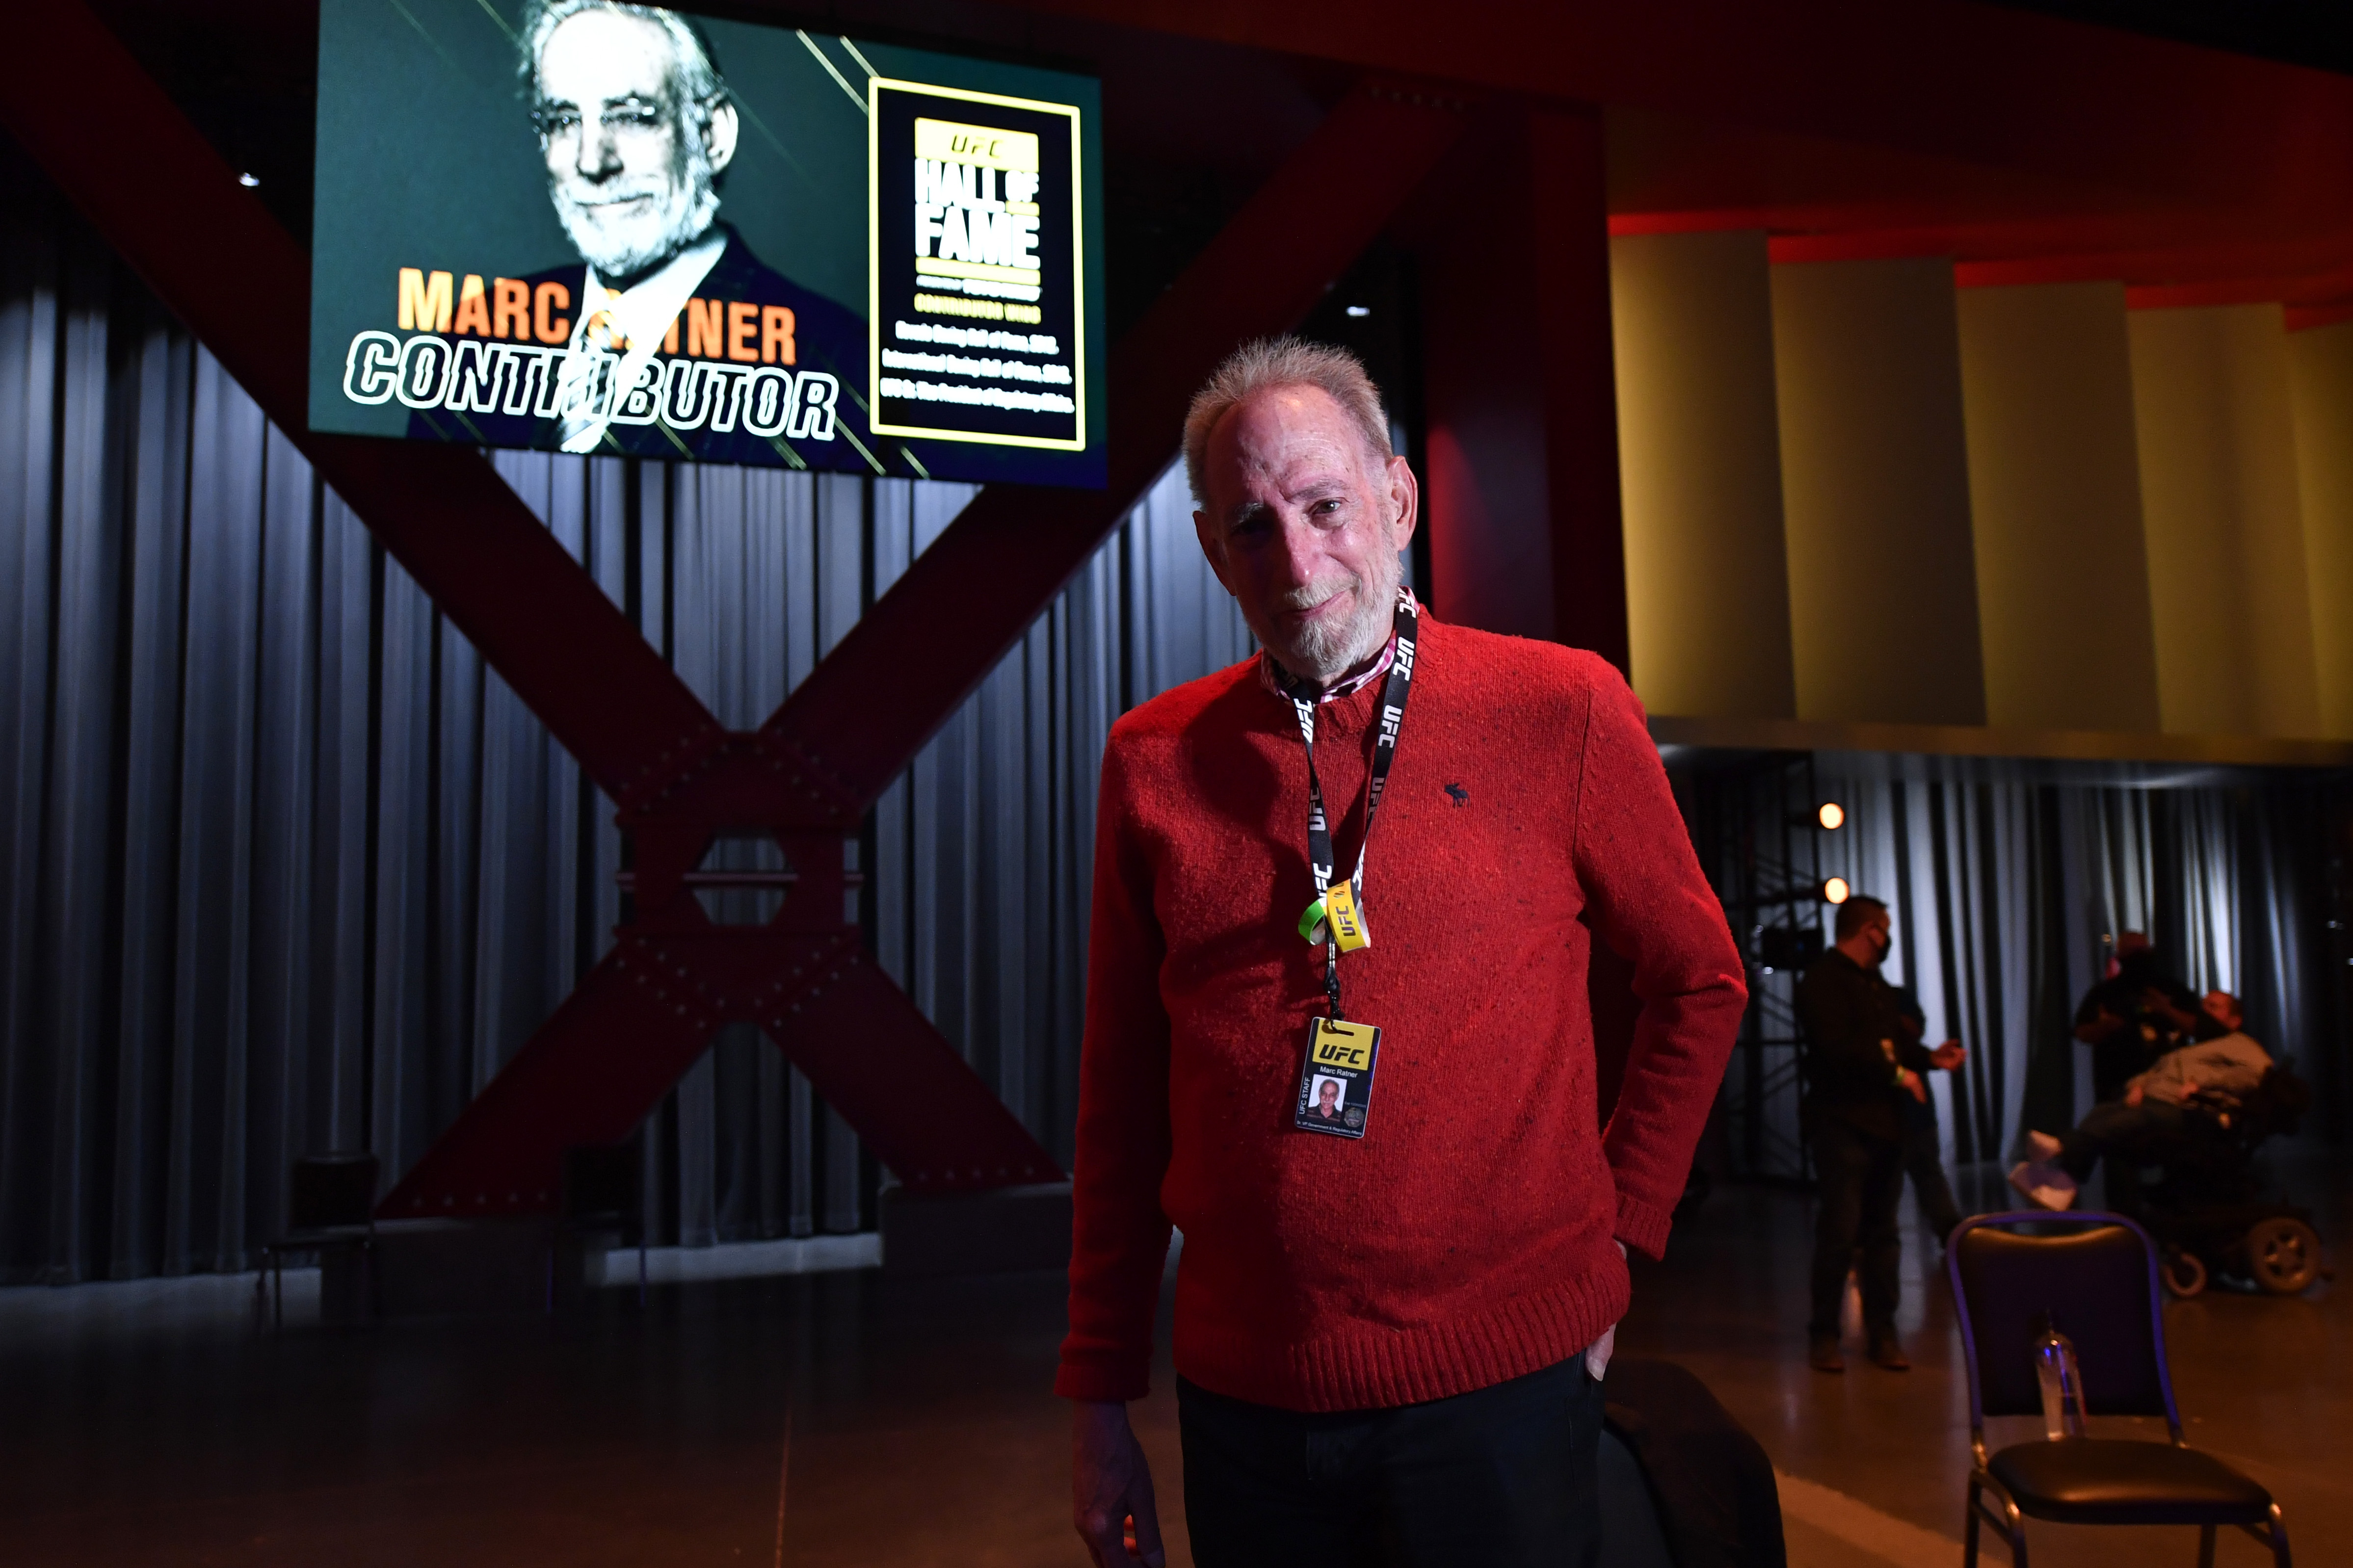 UFC Vice President of Regulatory Affairs Marc Ratner looks on after being announced as a newly elected member of the UFC Hall of Fame during the UFC 255 event at UFC APEX on November 21, 2020 in Las Vegas, Nevada. (Photo by Jeff Bottari/Zuffa LLC)